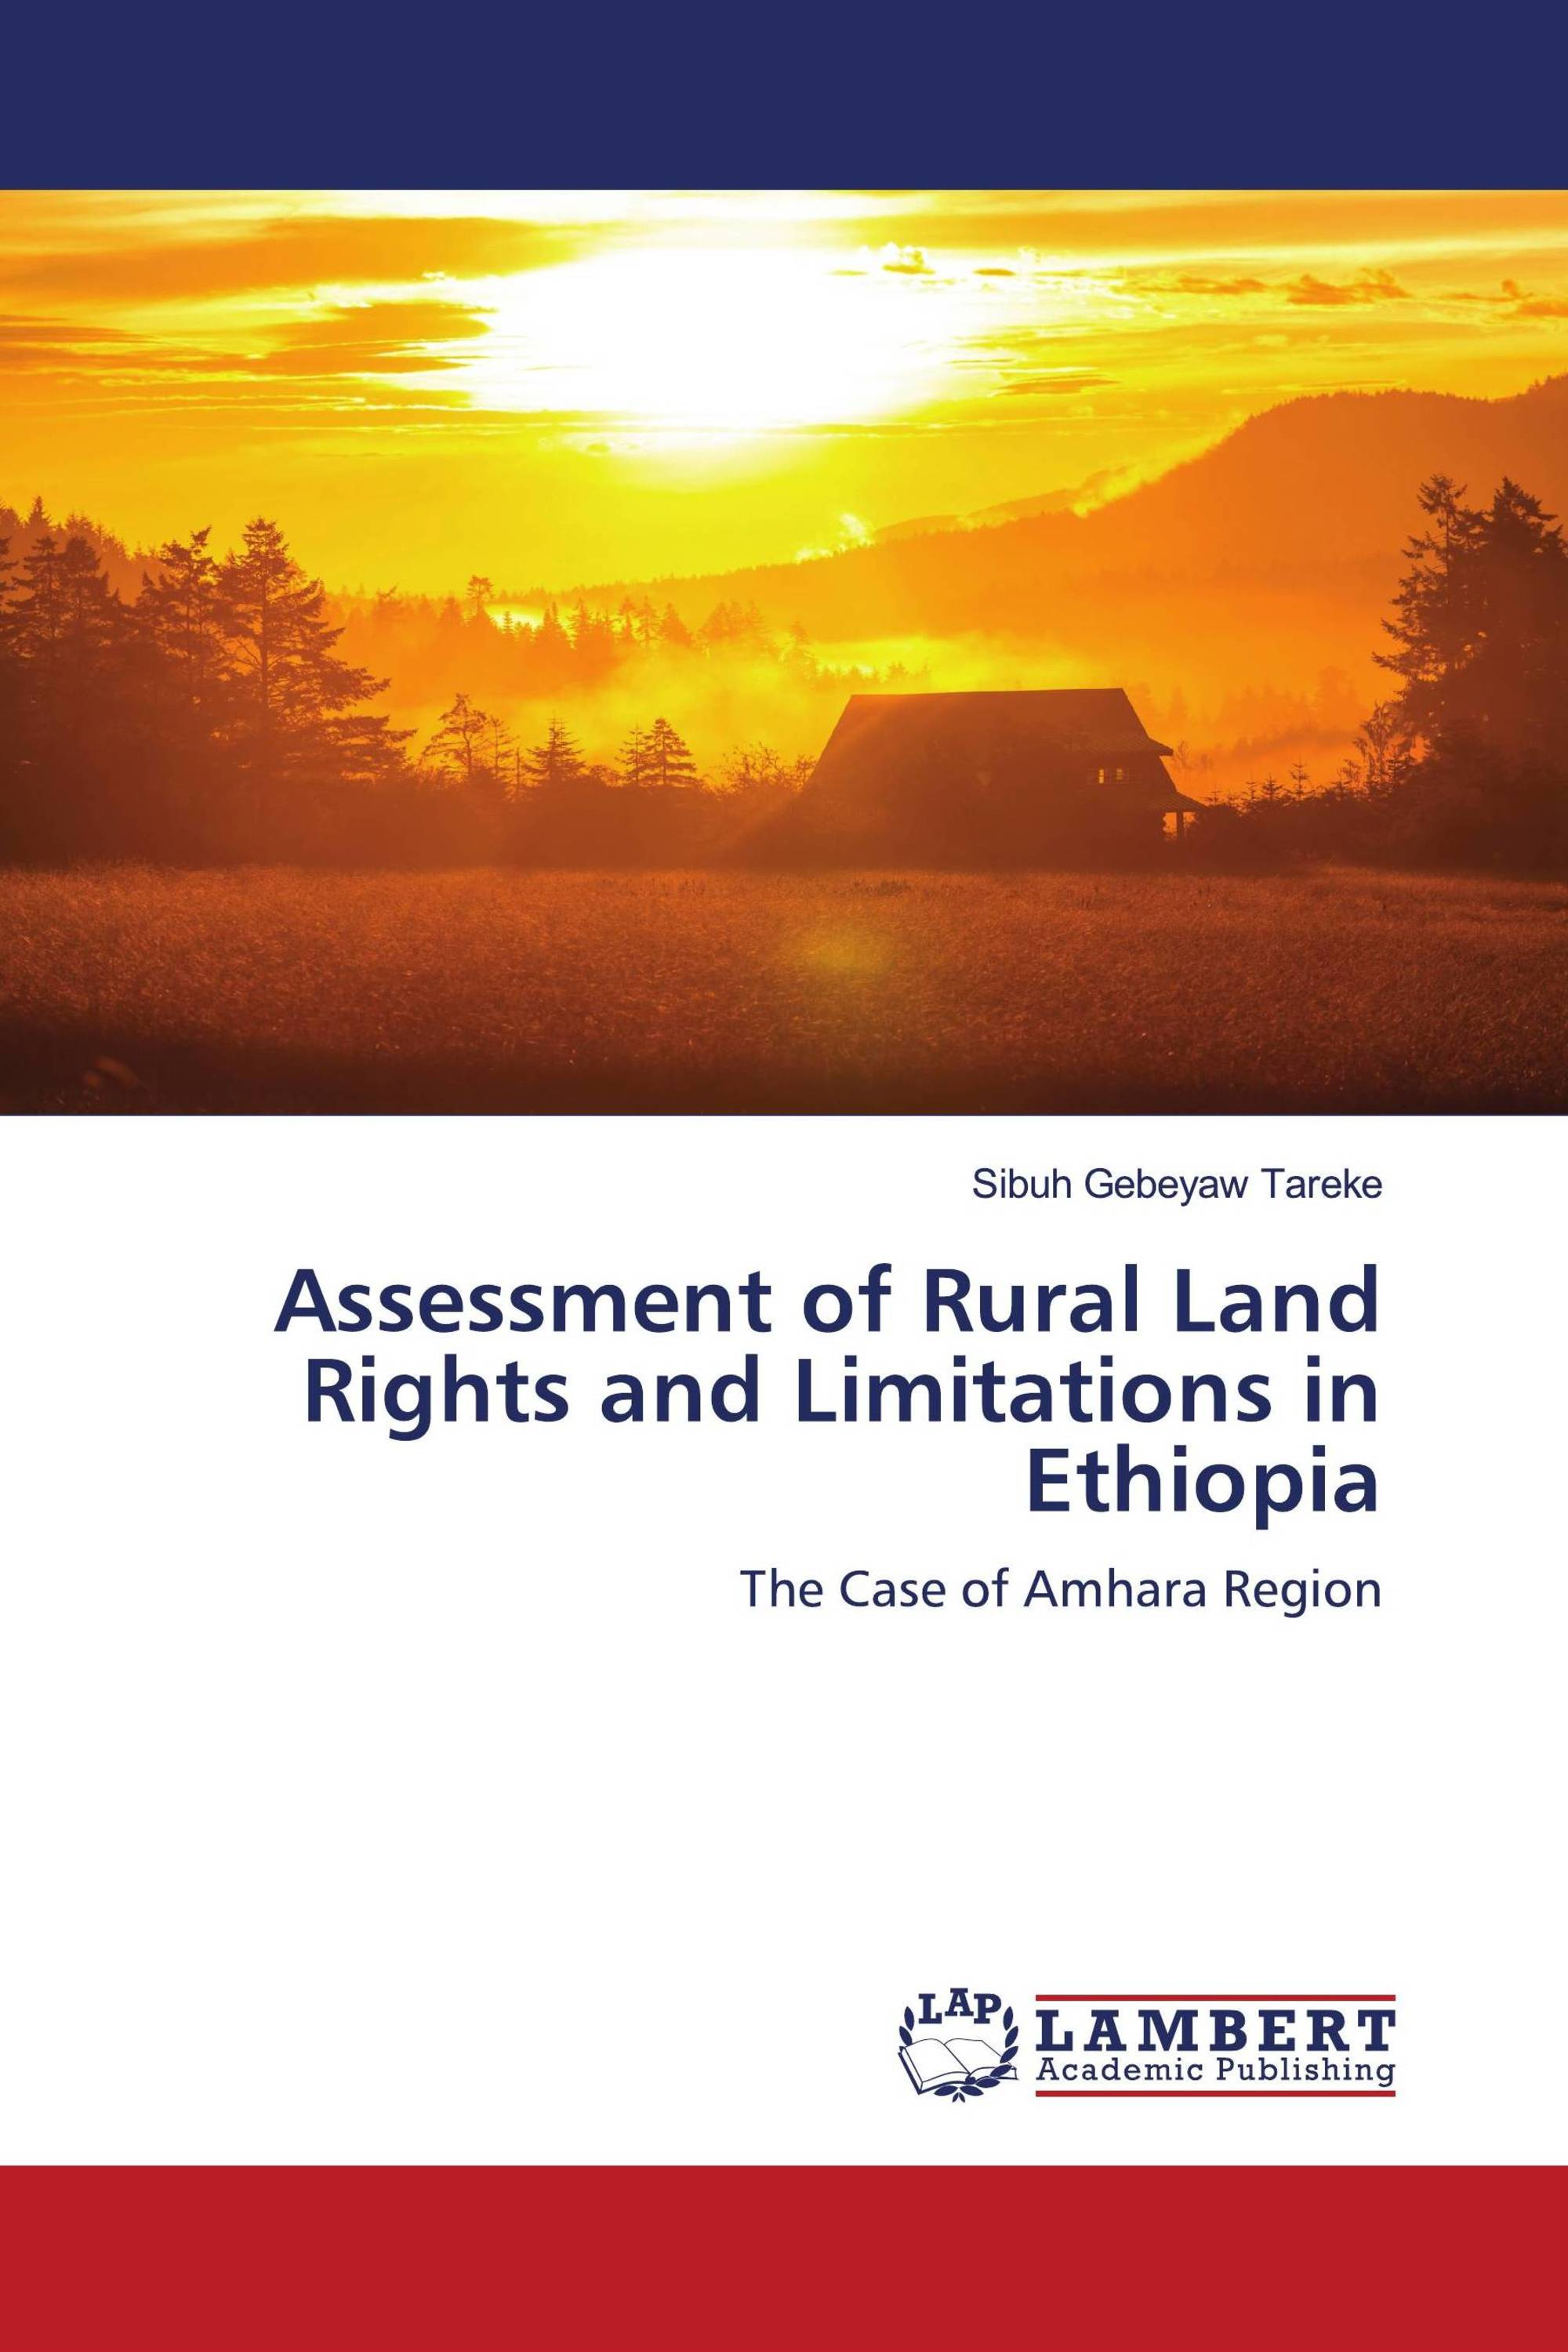 Assessment of Rural Land Rights and Limitations in Ethiopia